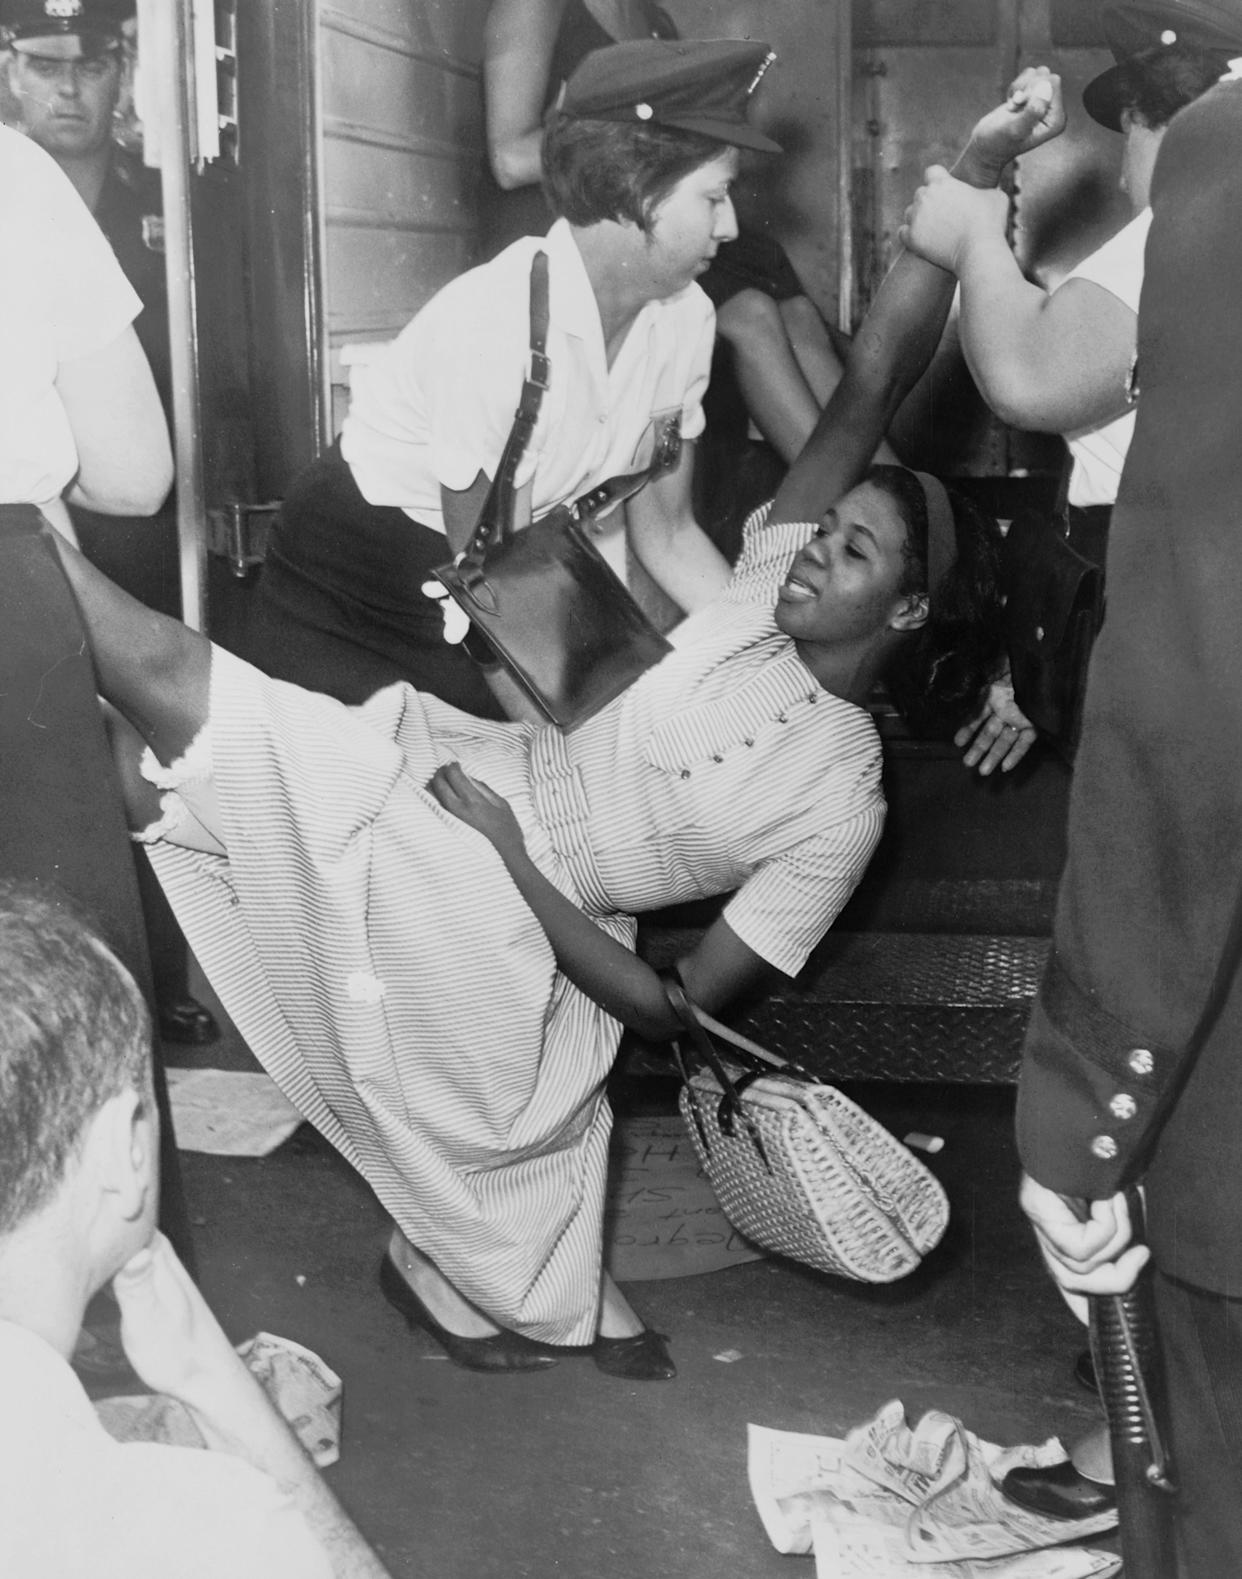 African American woman being carried to police patrol wagon during demonstration in Brooklyn, New Yorkcirca 1963.